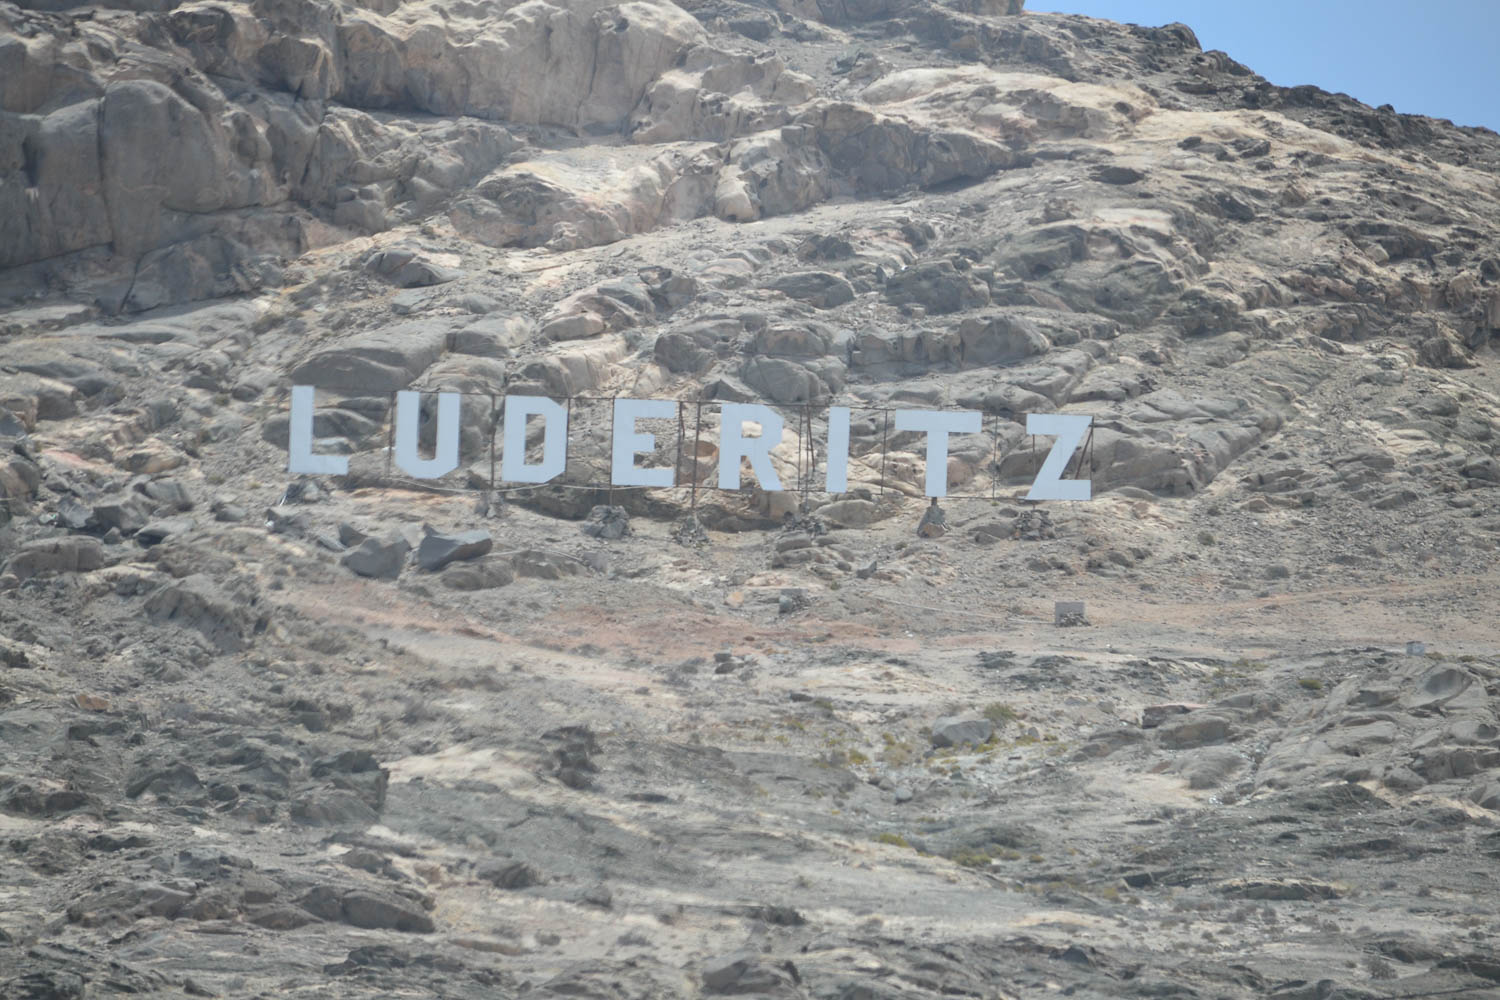 Luderitz, Namibia with South Africa Overland 4x4 Tours